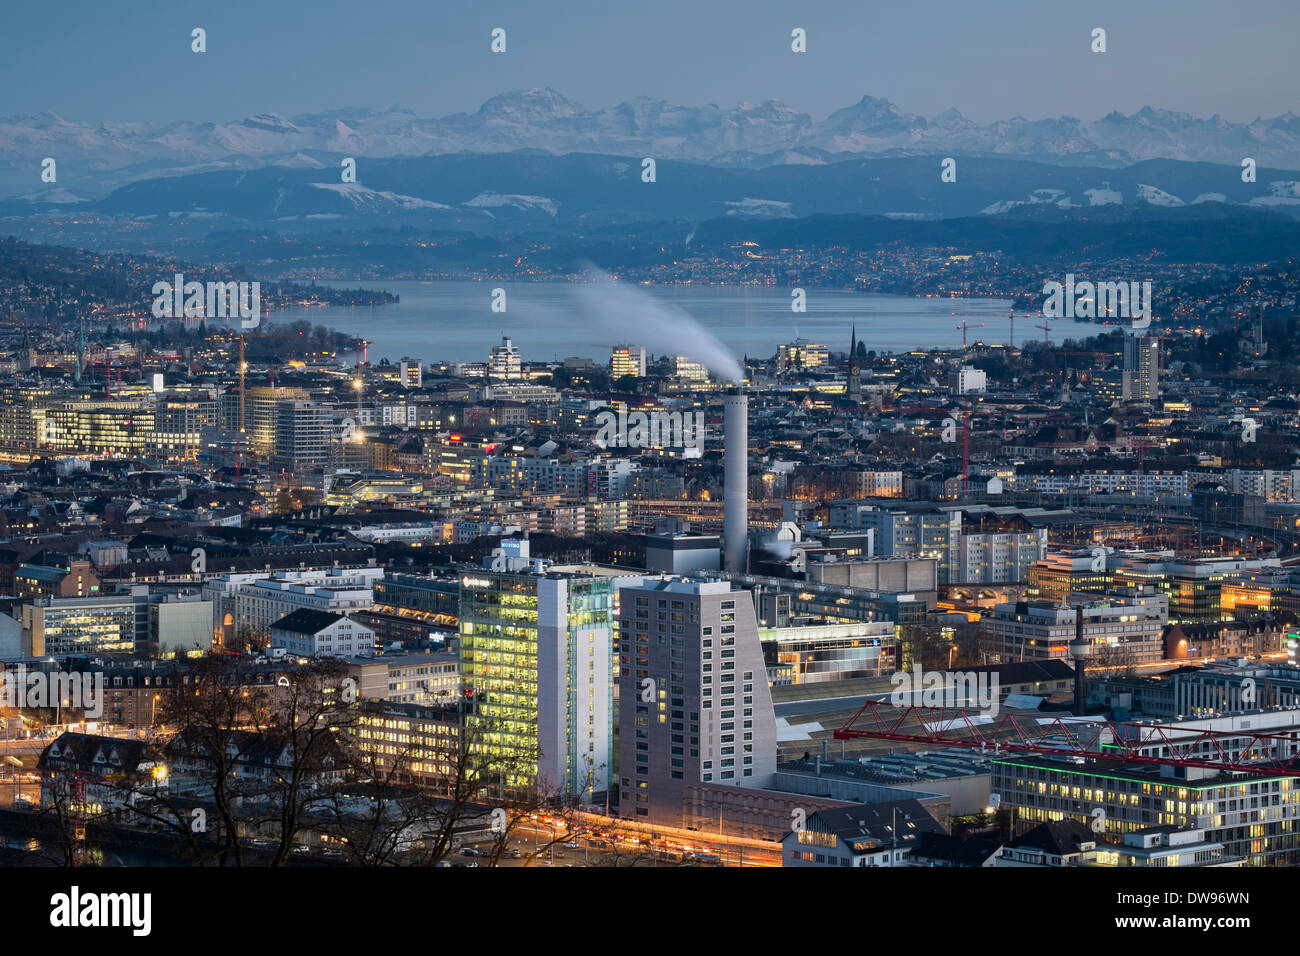 Cityscape, Lake Zurich at the rear, Swiss Alps on the horizon, Zurich, Switzerland Stock Photo